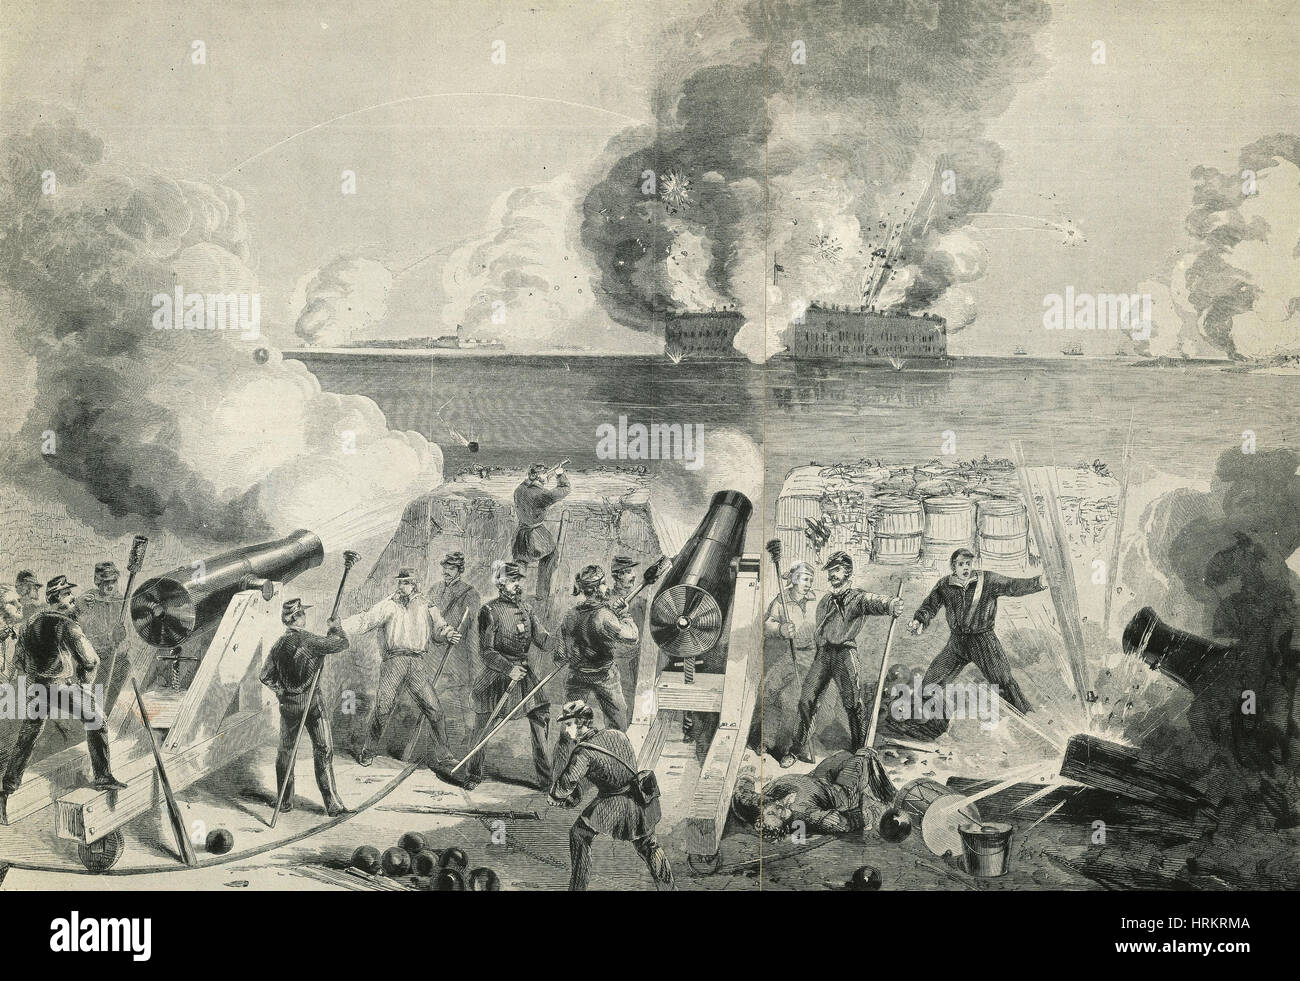 Battle of Fort Sumter, 1861 Stock Photo, Royalty Free Image ...